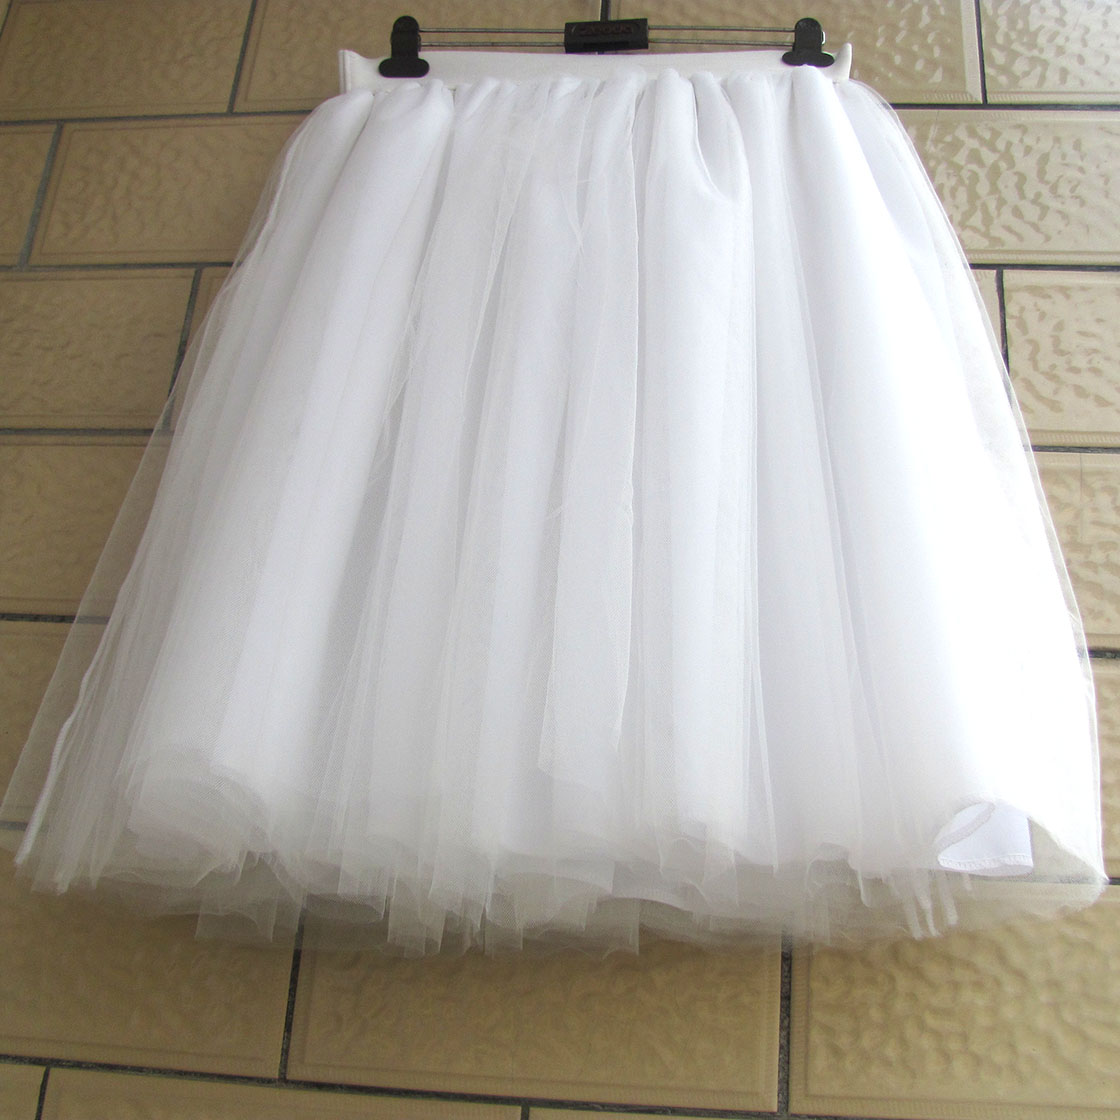 Related: chiffon skirt long chiffon dress chiffon maxi skirt tulle skirt chiffon blouse chiffon pants long skirt high low skirt chiffon mini skirt chiffon dance skirt. Include description. US Womens Multi-Layers Tulle Skirt Long Dress Princess Ballet Tutu Dance Prom. Brand New. $ Buy .